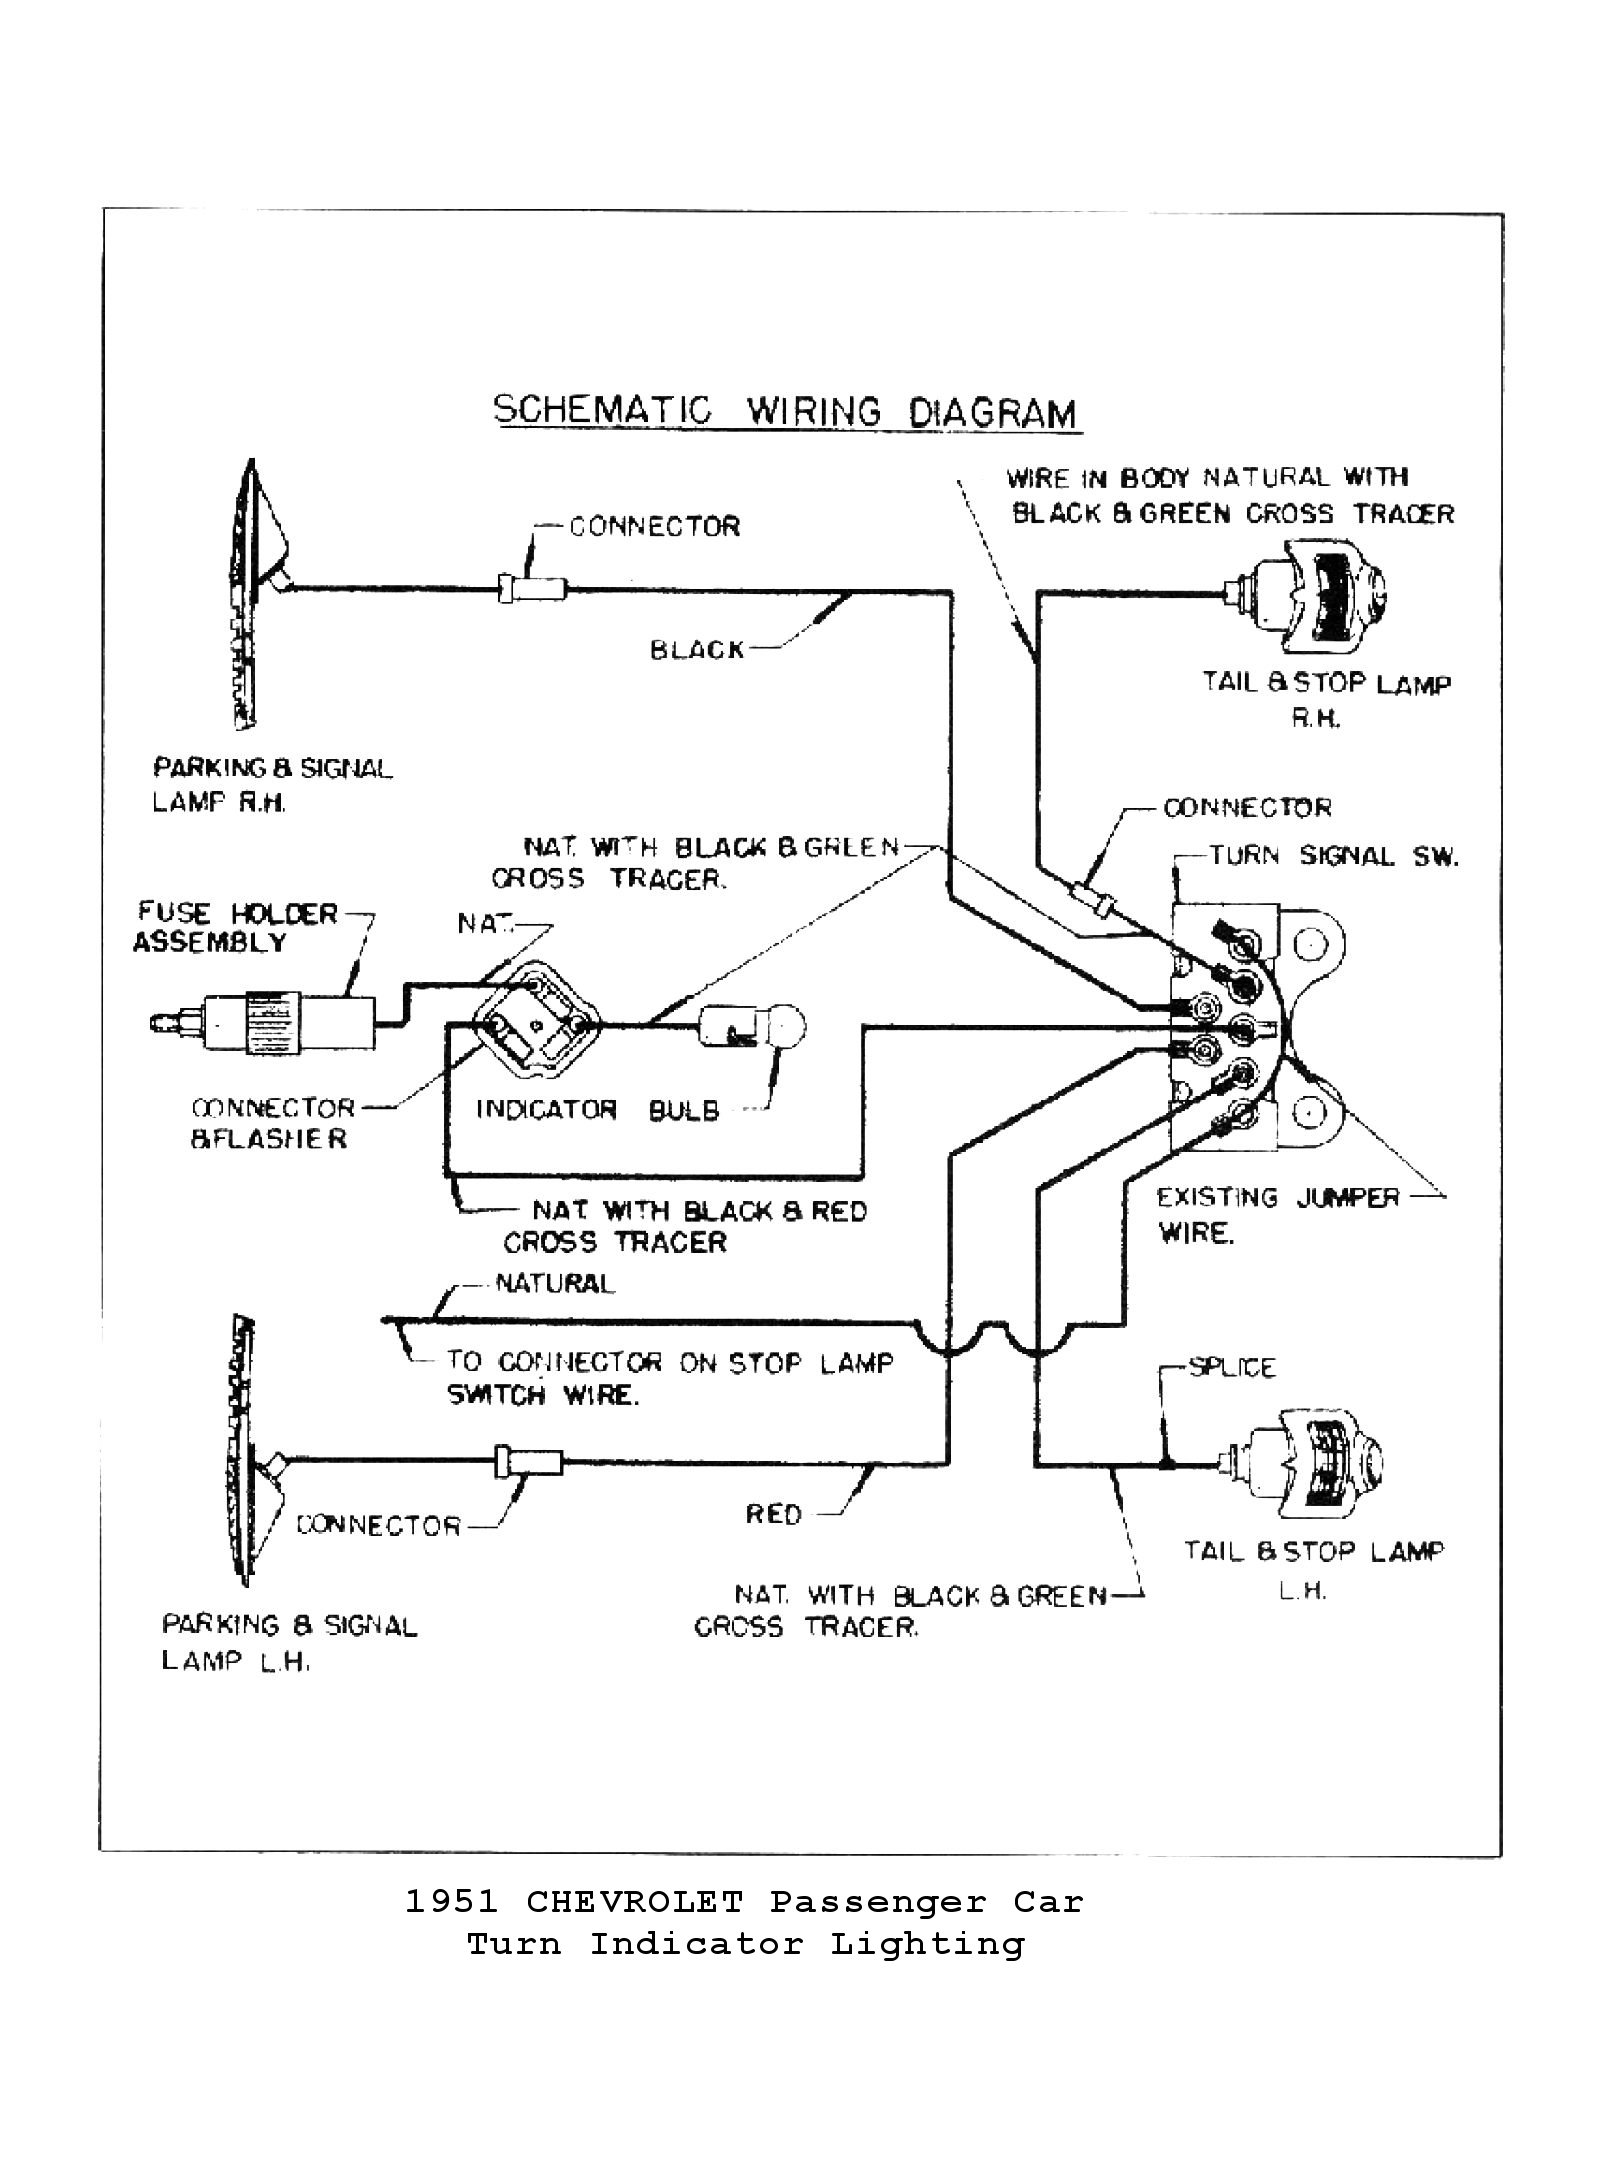 hight resolution of 1948 chevrolet wiring diagram wiring diagram schematics chevy steering column wiring harness 55 chevy radio wiring